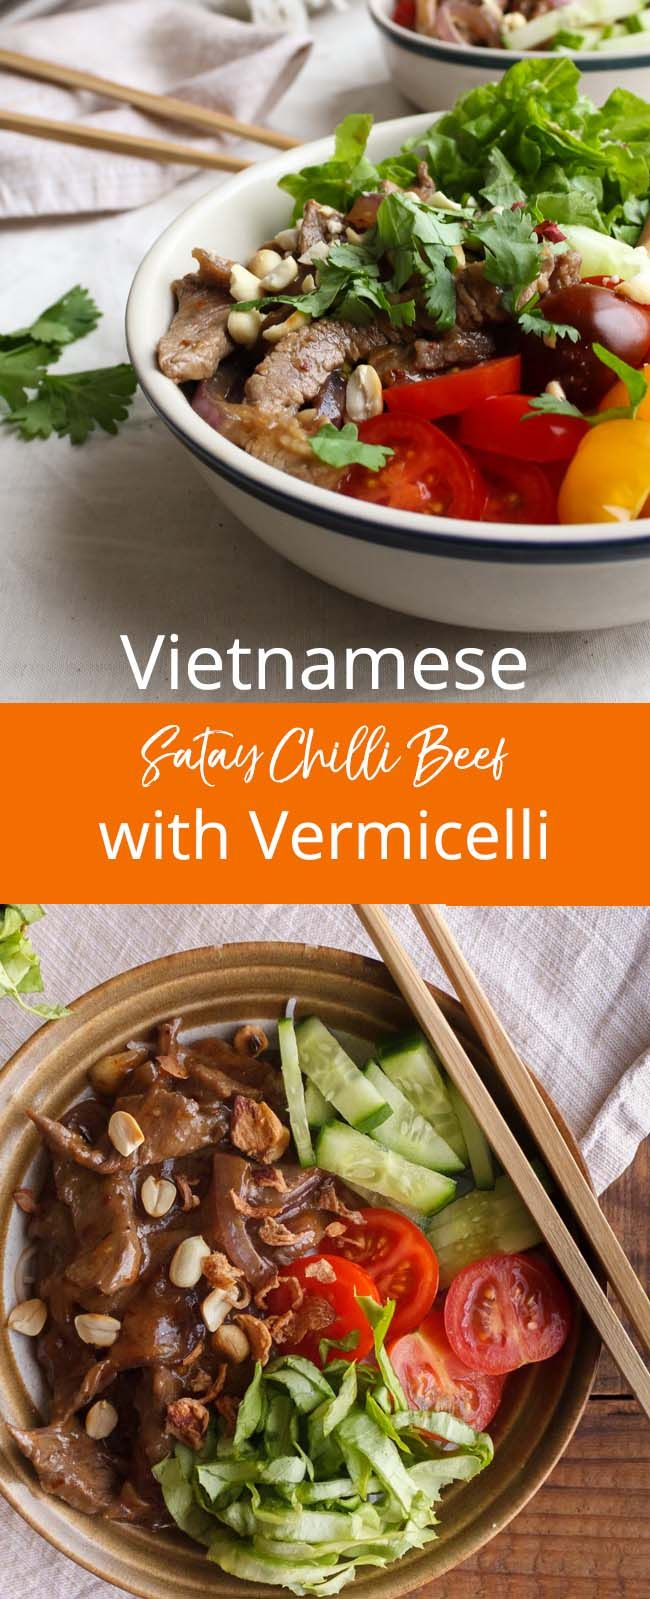 VIETNAMESE SATAY CHILLI BEEF WITH VERMICELLI: Vietnamese food is one of my favourite cuisines and this dish was created by my mum when I was younger. It takes elements of Vietnamese food with fresh ingredients and flavoursome stir fried beef and serves up a satisfying one bowl dish.